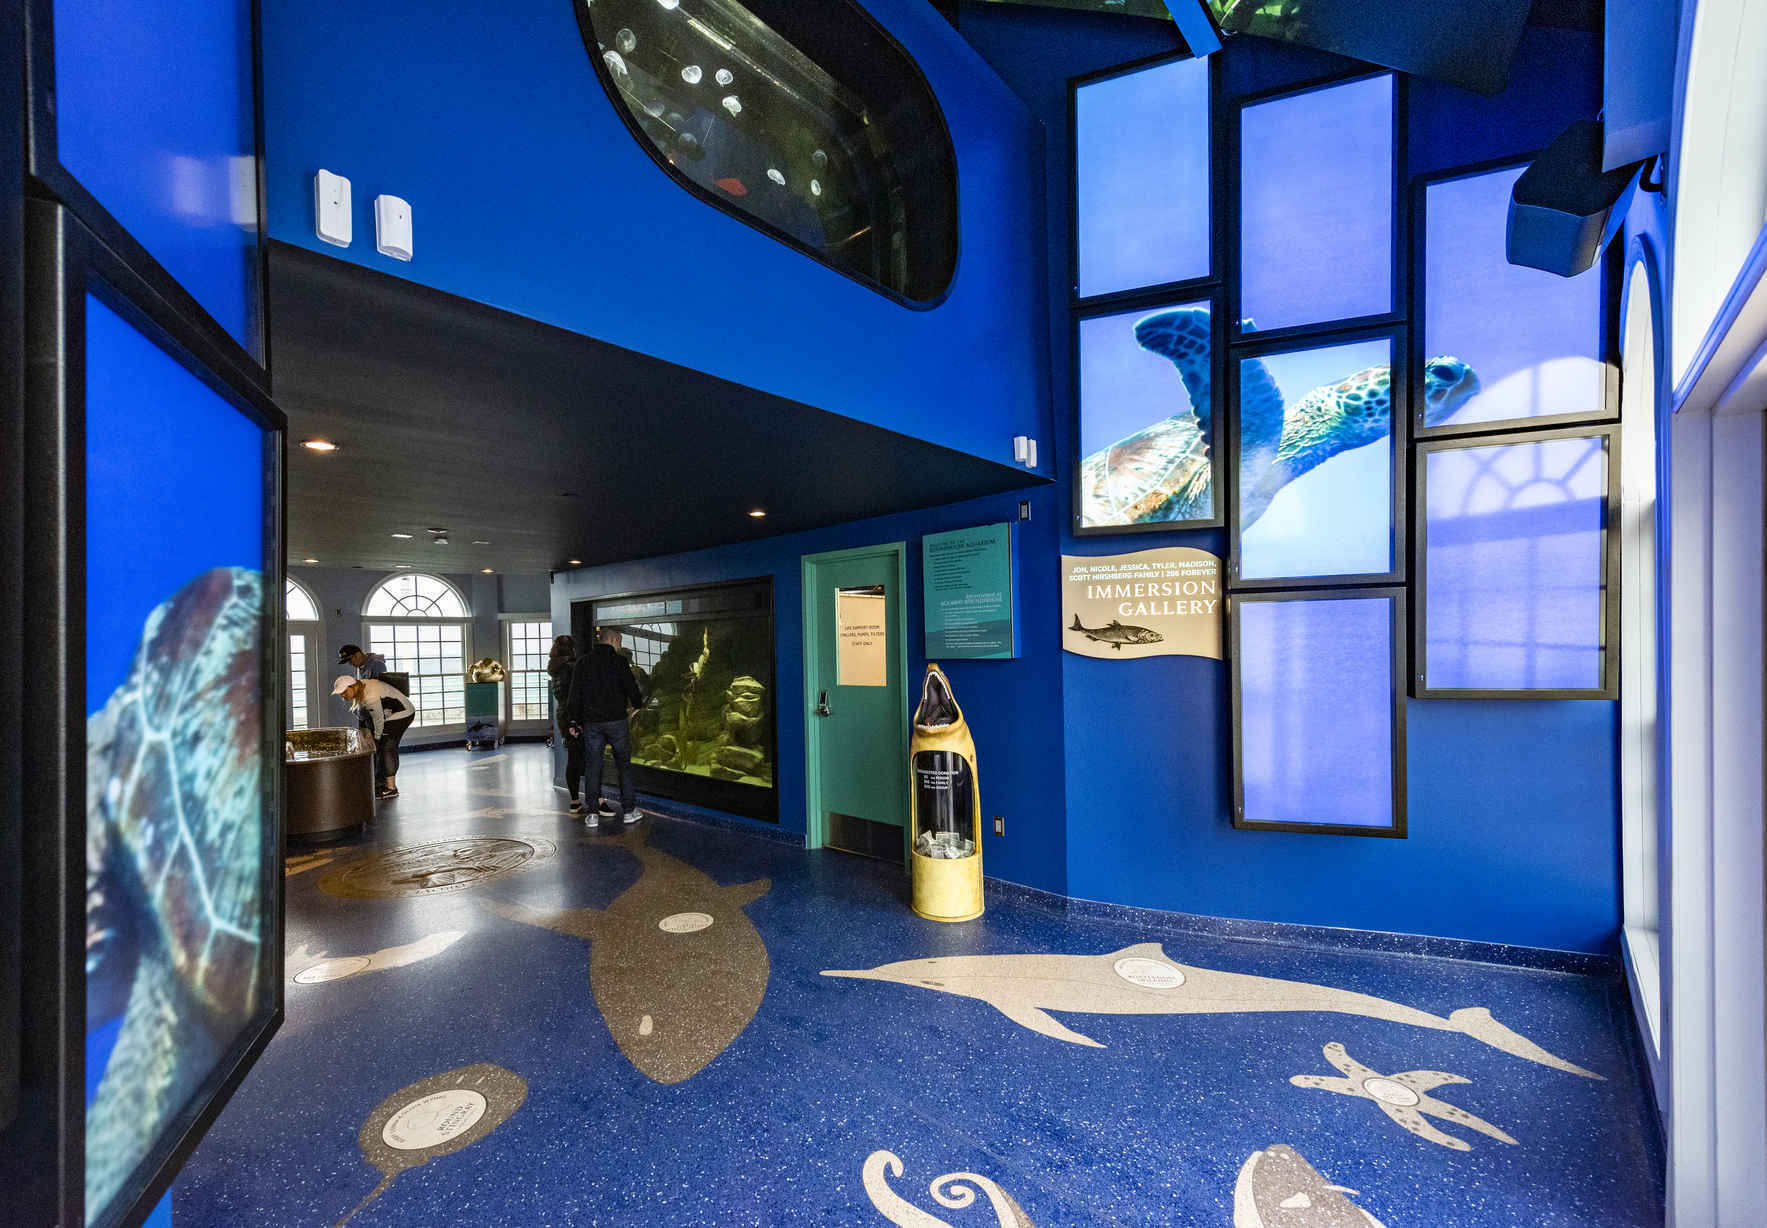 July 9 - Reserve your free entry to the Roundhouse Aquarium image